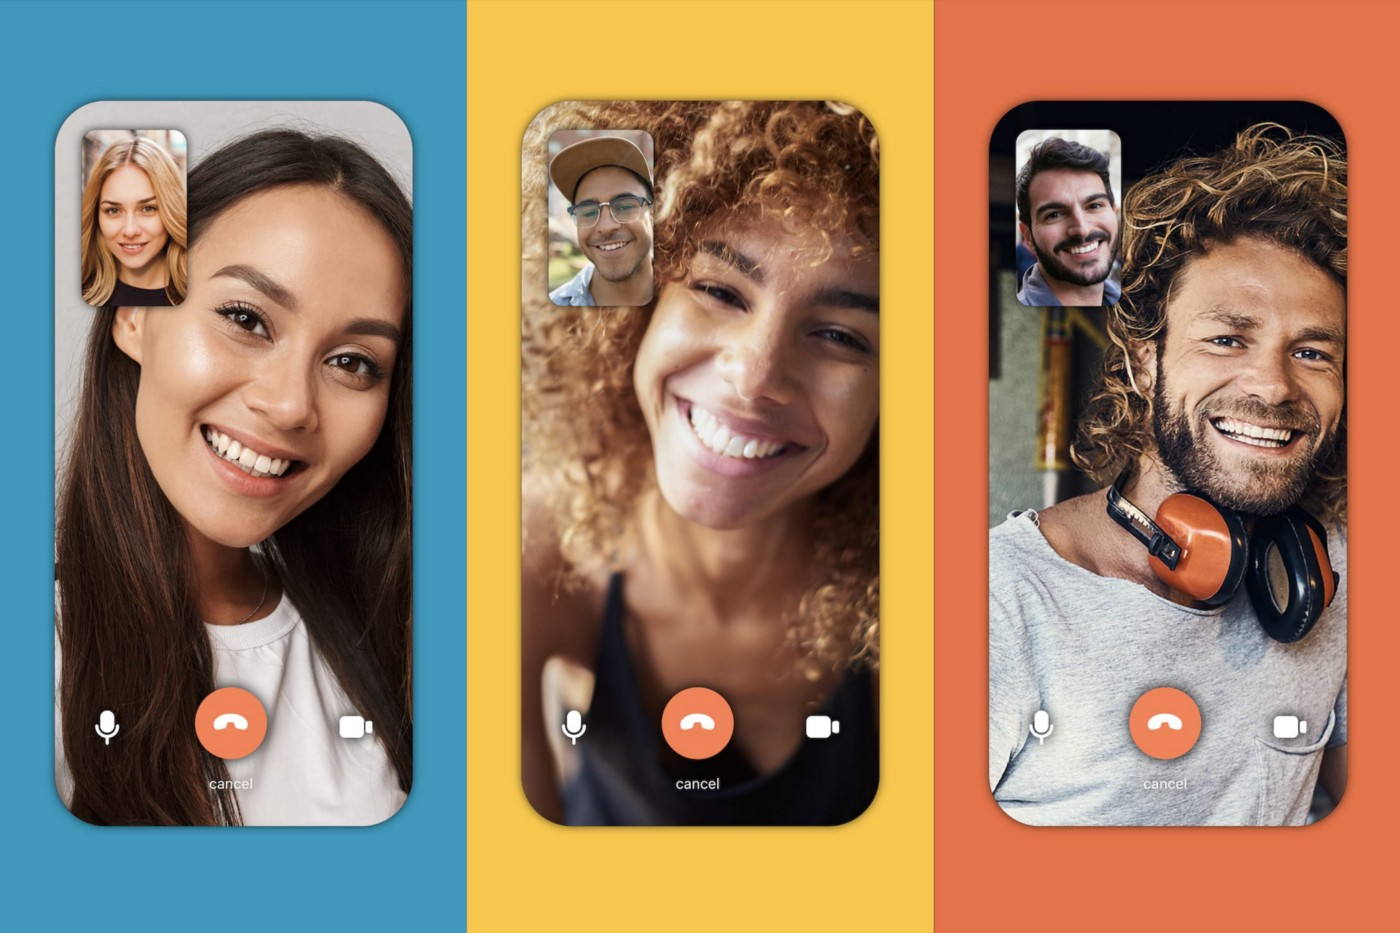 Side-by-side images of three people on video calls with others on the Bumble chat function.